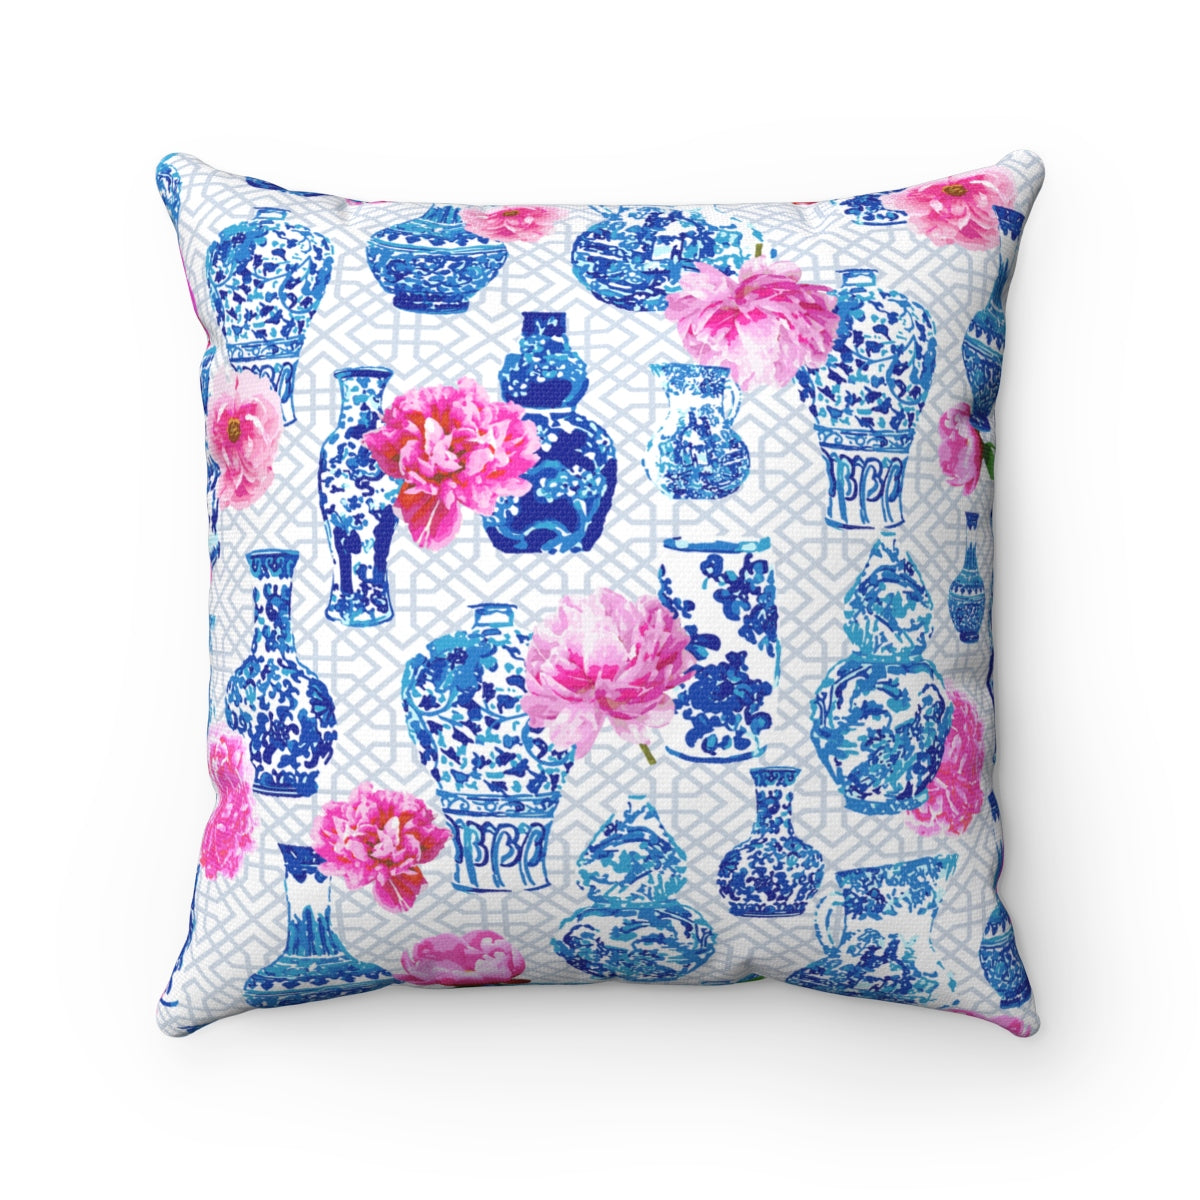 Blue and white ginger jar throw pillow cover with pink peonies chinoiserie chic